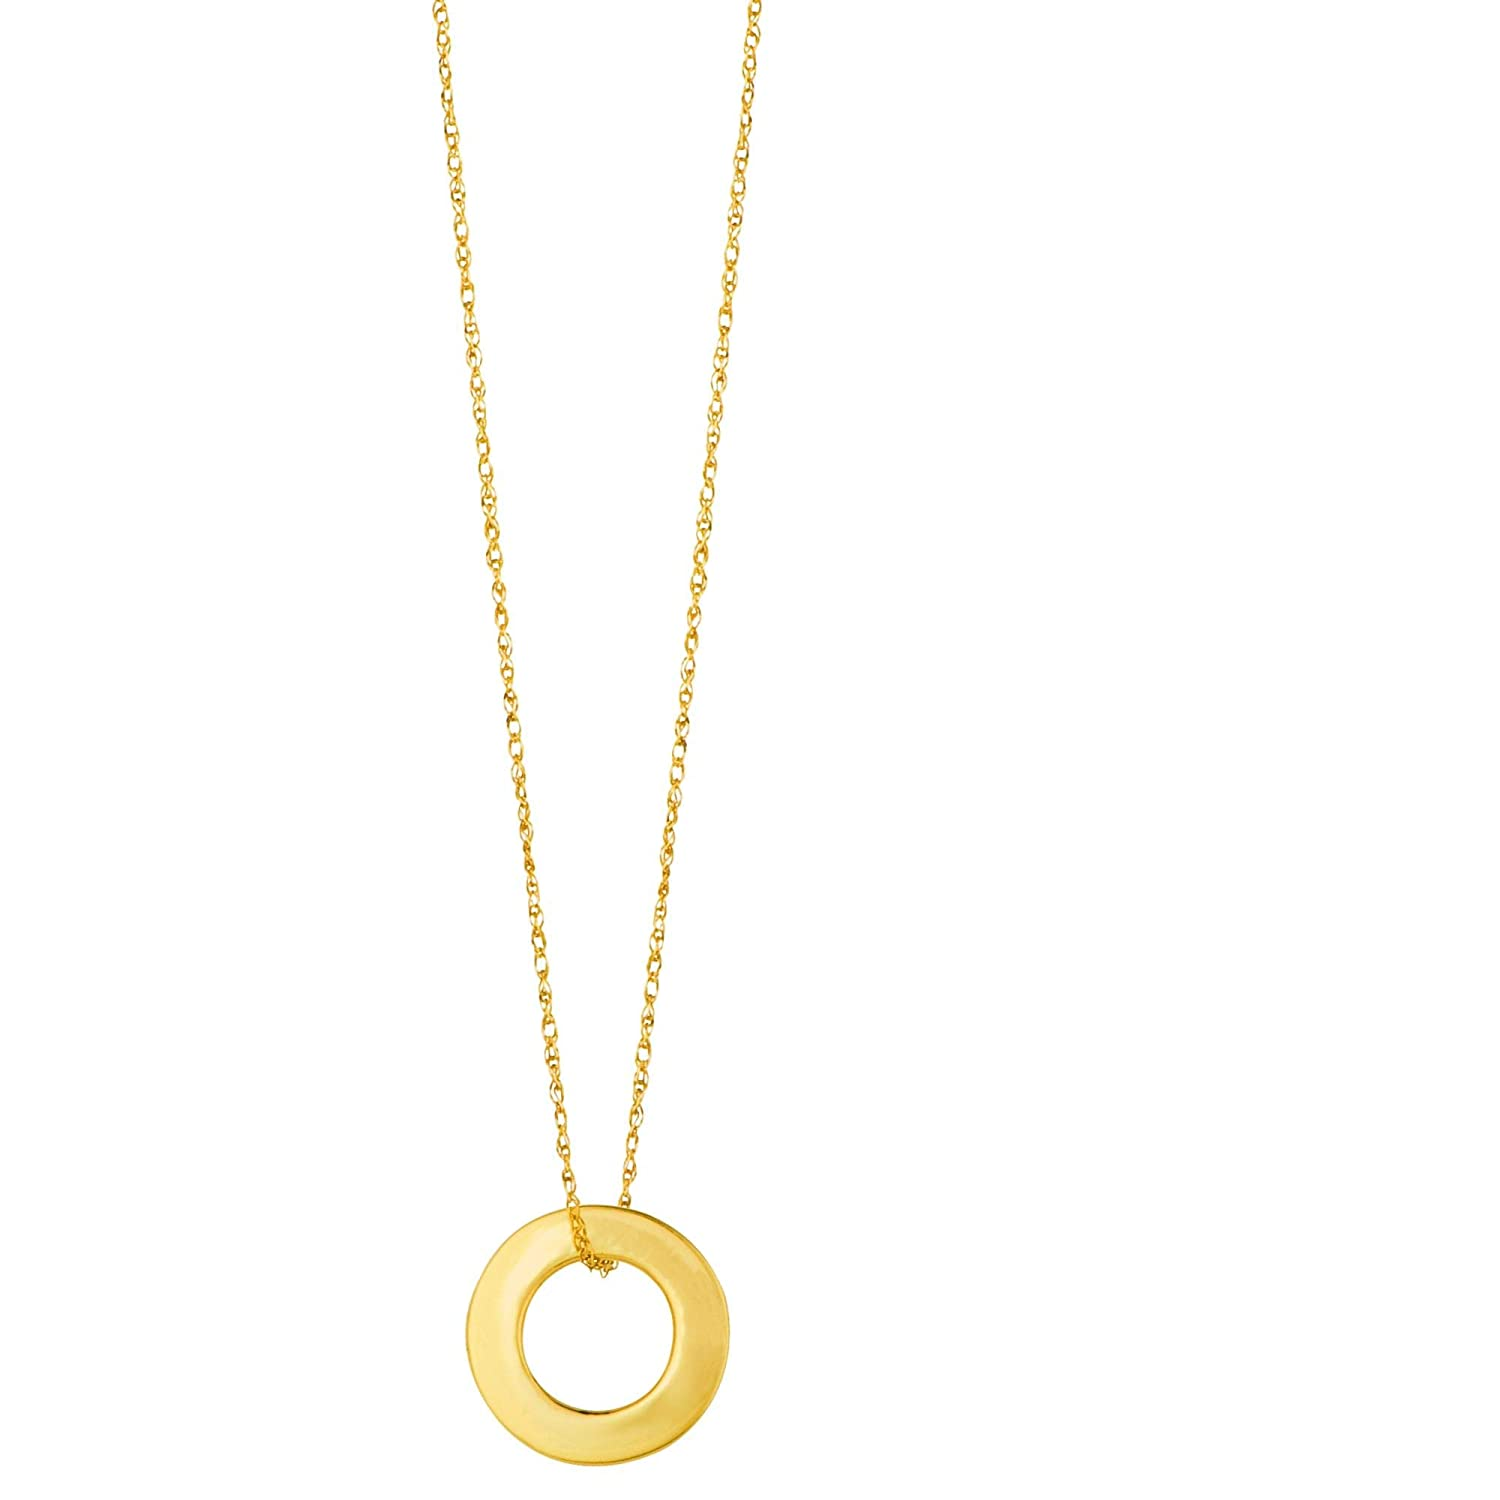 14K Yellow Gold Shiny Cable Link Chain 18 with Spring Ring Clasp and Open Circle Pendant by IcedTime